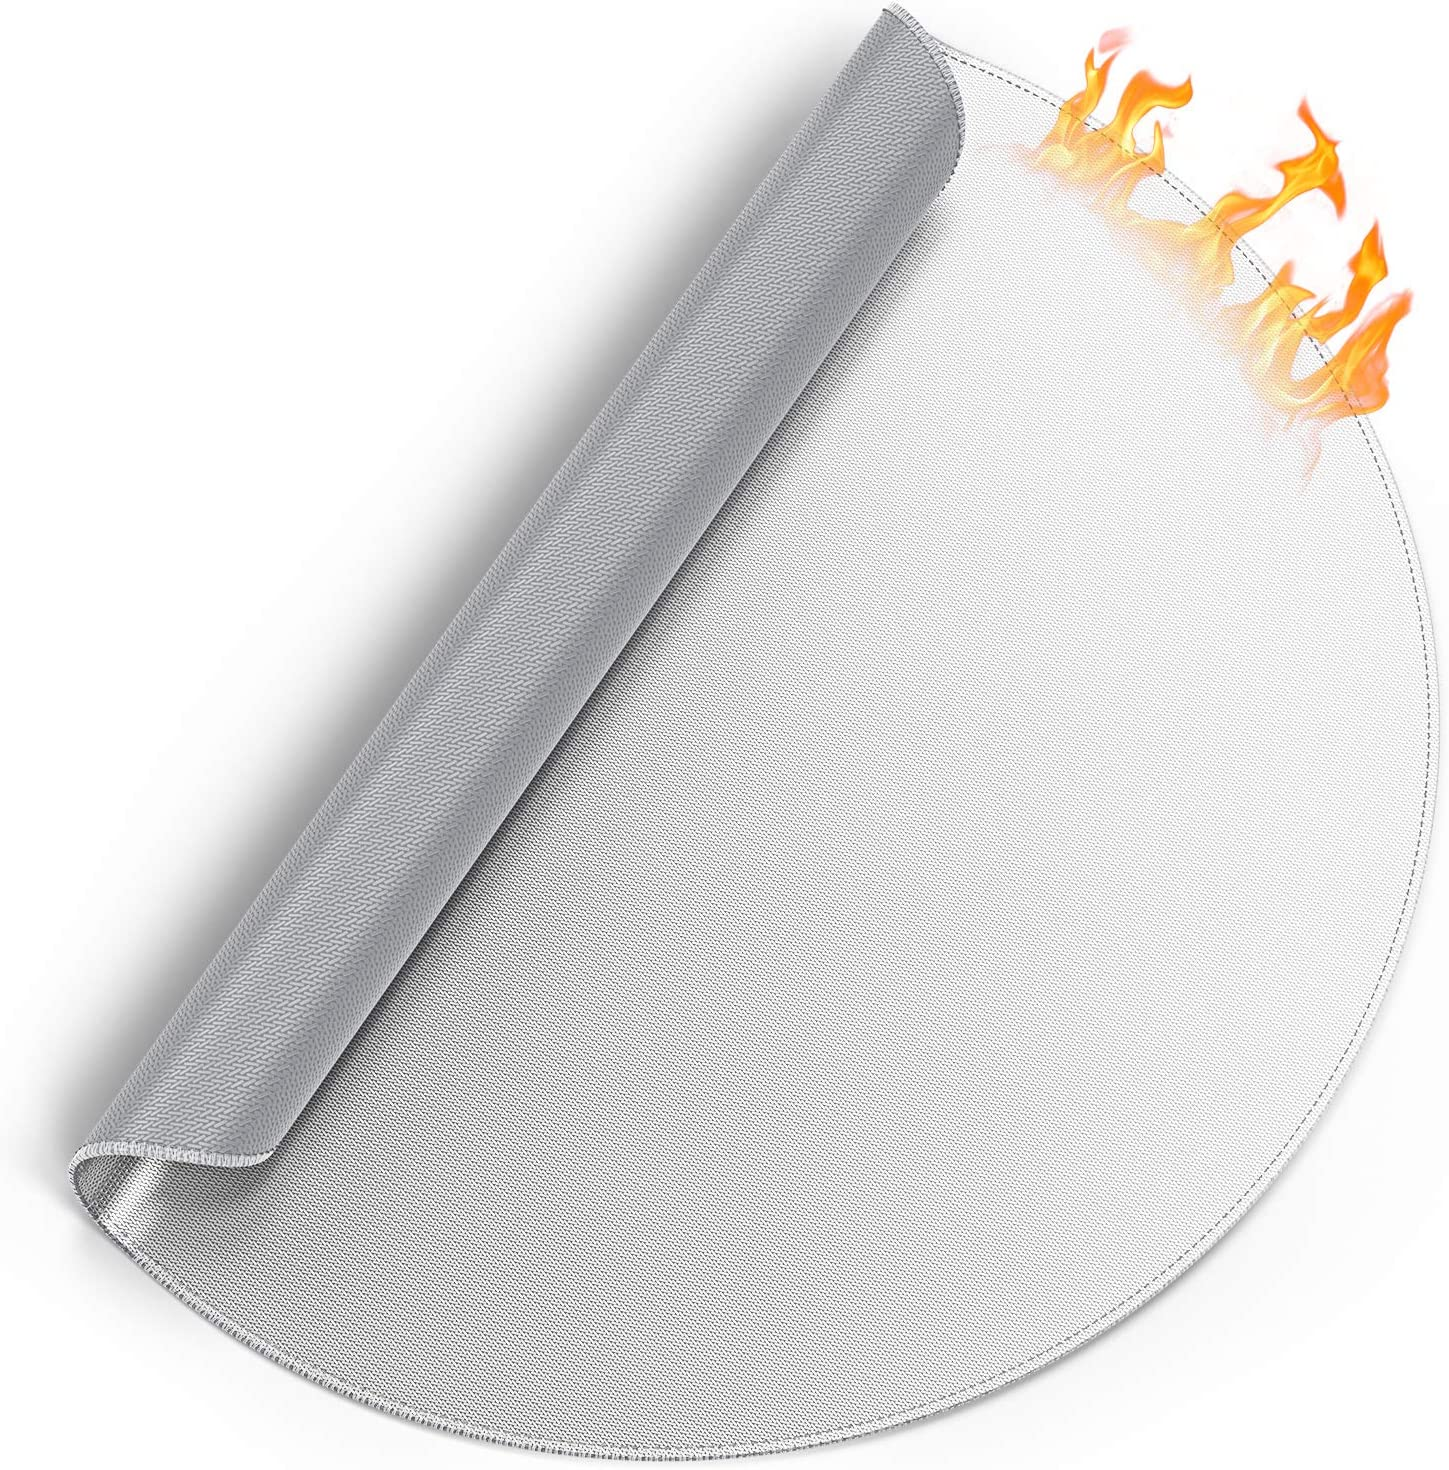 ThinkTex Fire Pit Mat 36'' Acce Pad Max 82% OFF Protector Deck Online limited product